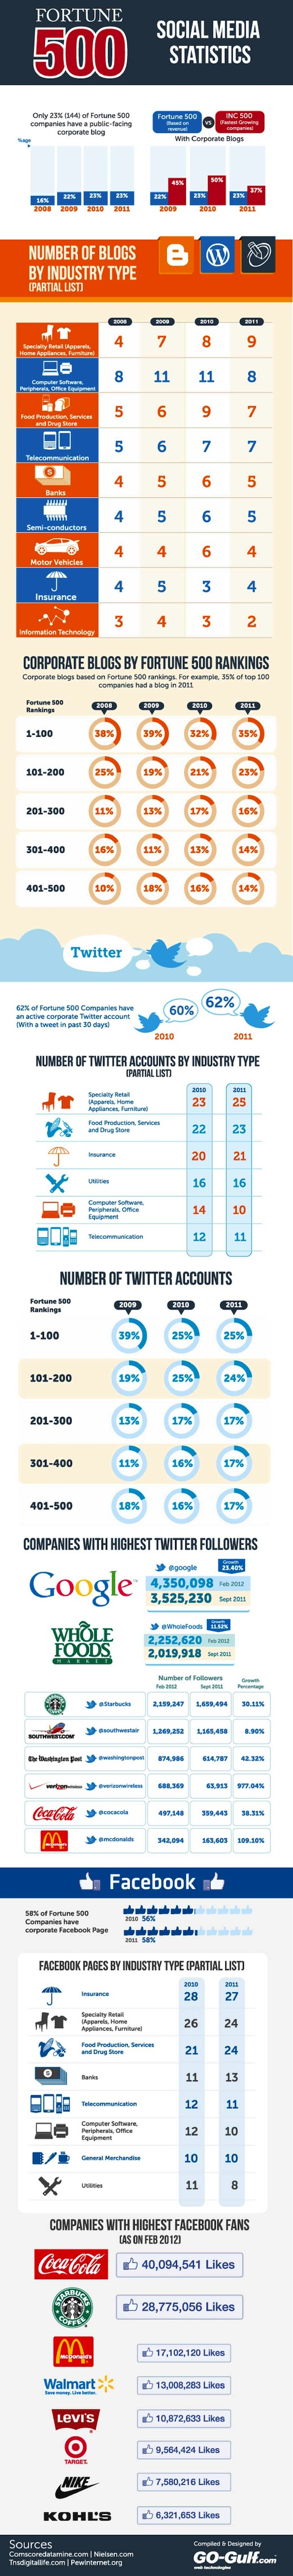 How Fortune 500 companies use social media